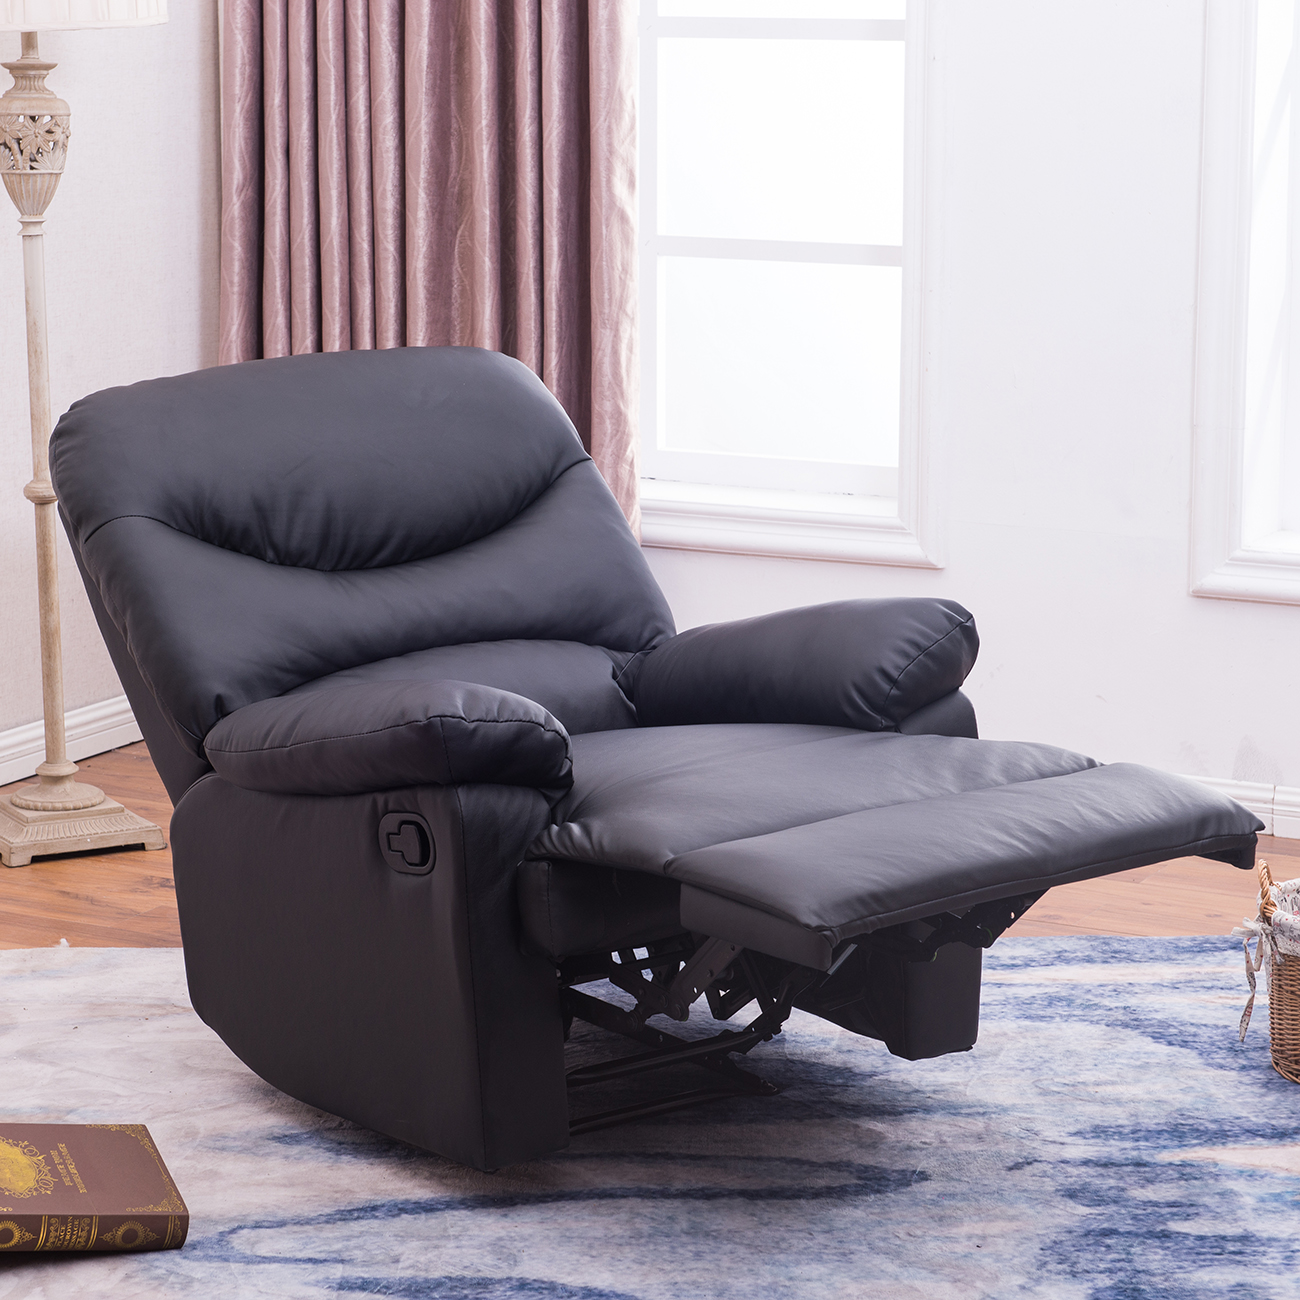 Details About Padded Plush Recliner Living Room Reclining Chair Tv Living Room Black Brown